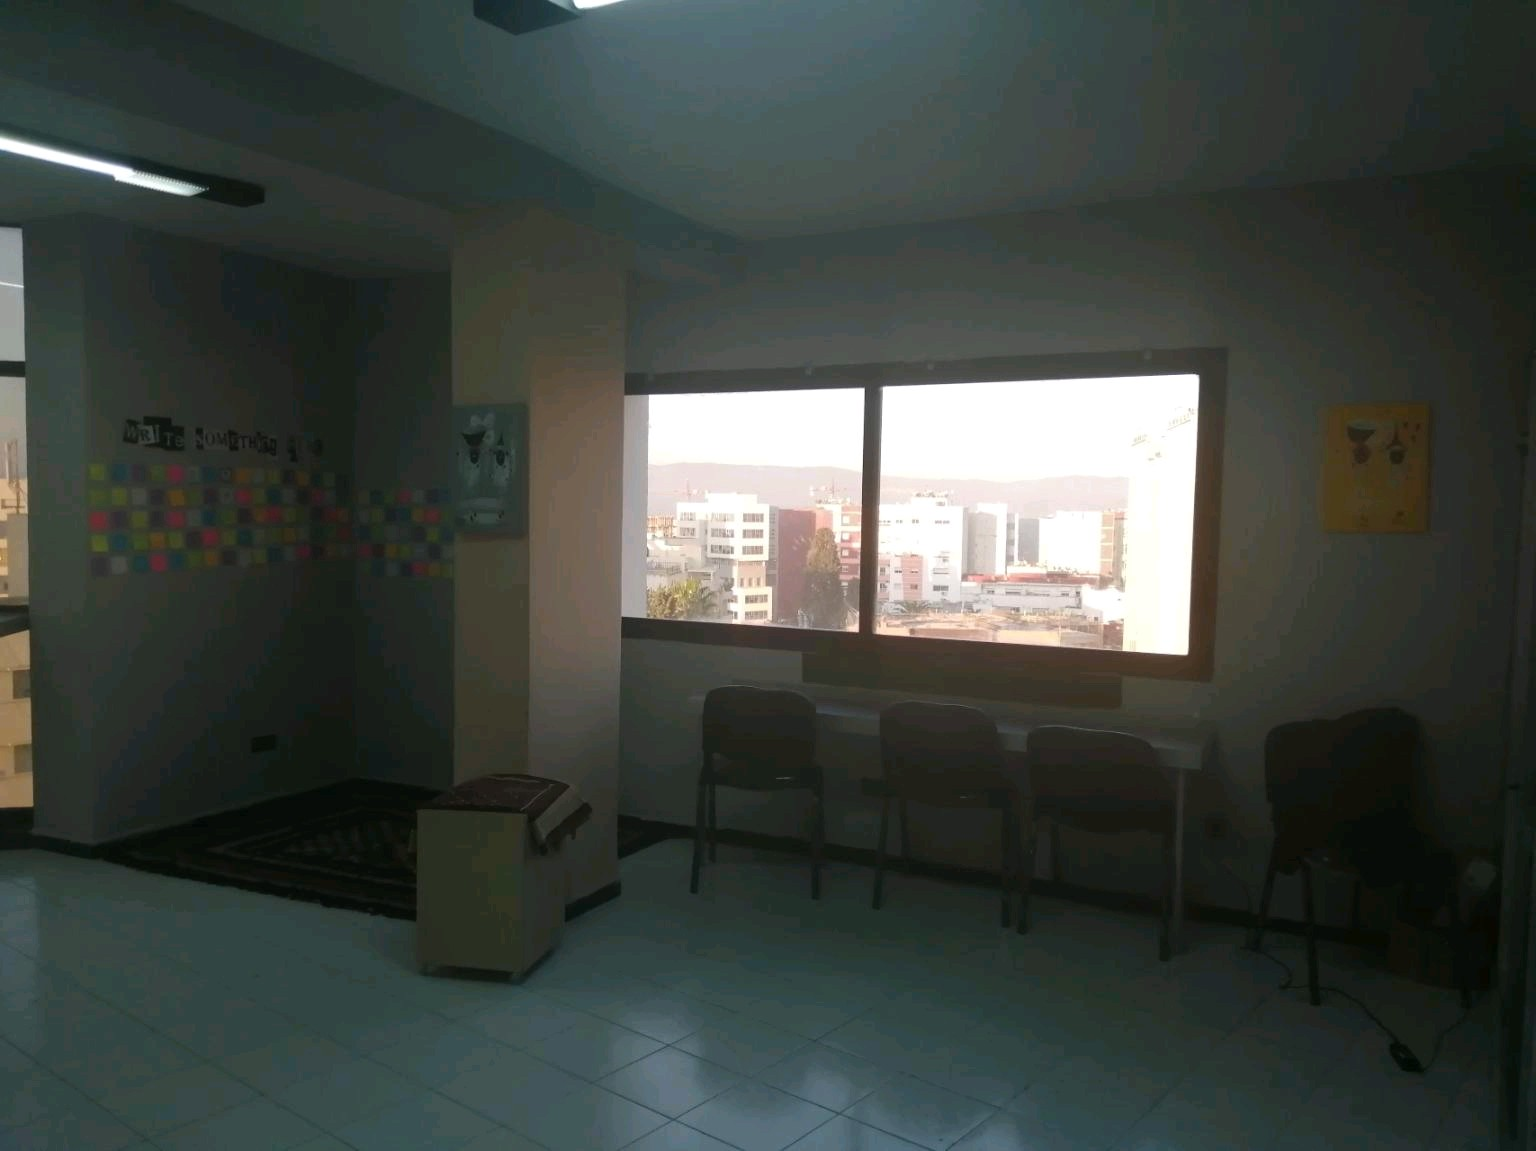 Area 51 Treviglio area 51 business center, meknes - book online - coworker